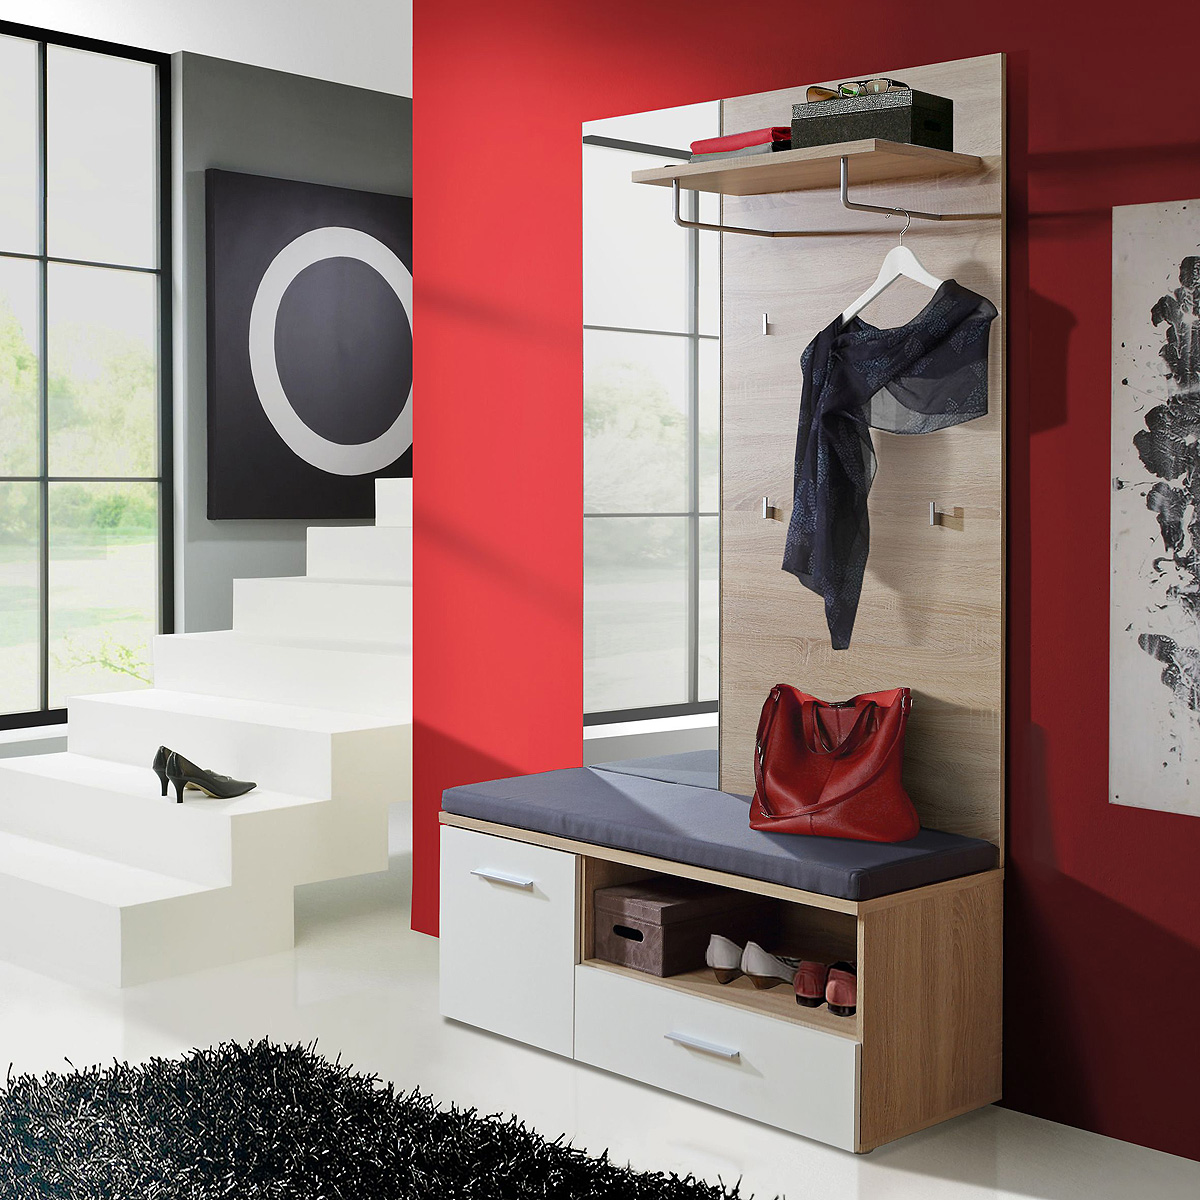 garderobenset baku garderobe paneel spiegel schuhbank sonoma eiche wei ebay. Black Bedroom Furniture Sets. Home Design Ideas